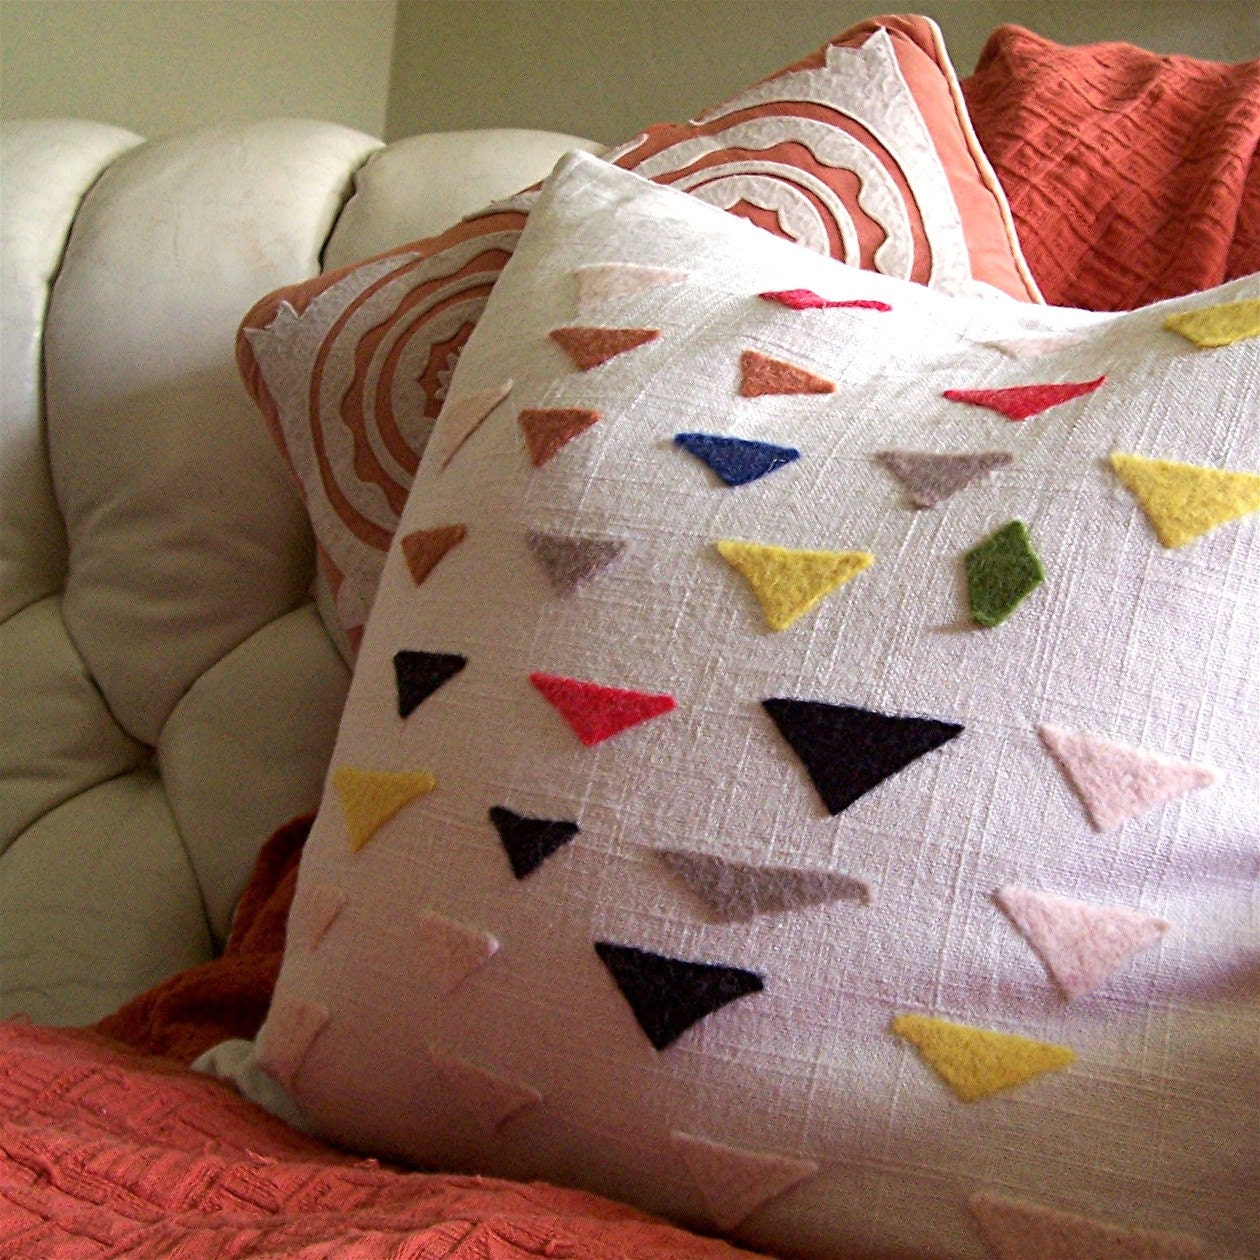 Felt Triangles Pillow Cover Modern Design on Linen Blend